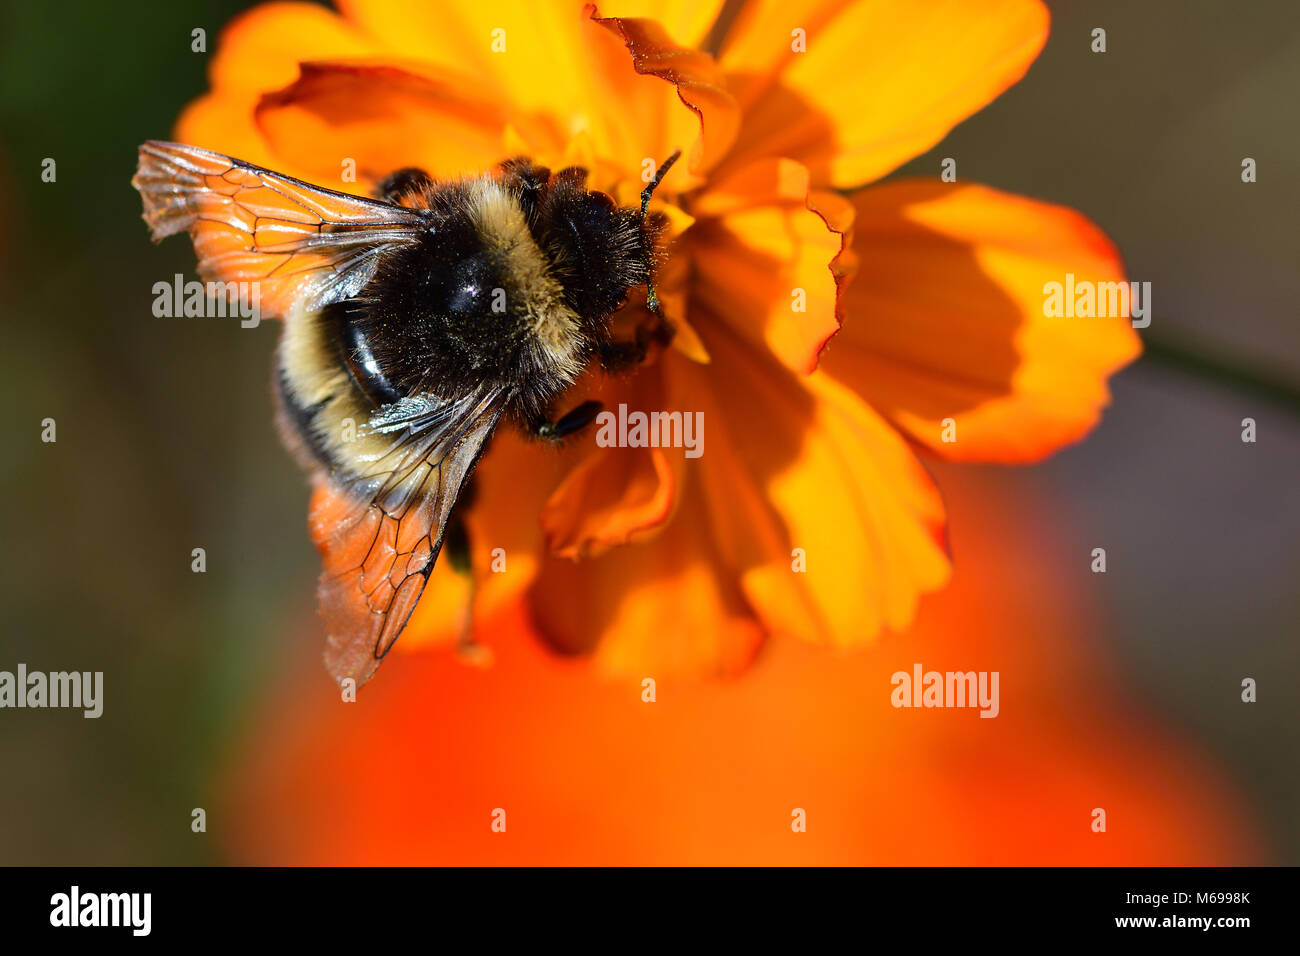 Macro shot of a bumble bee pollinating an orange coreopsis flower - Stock Image